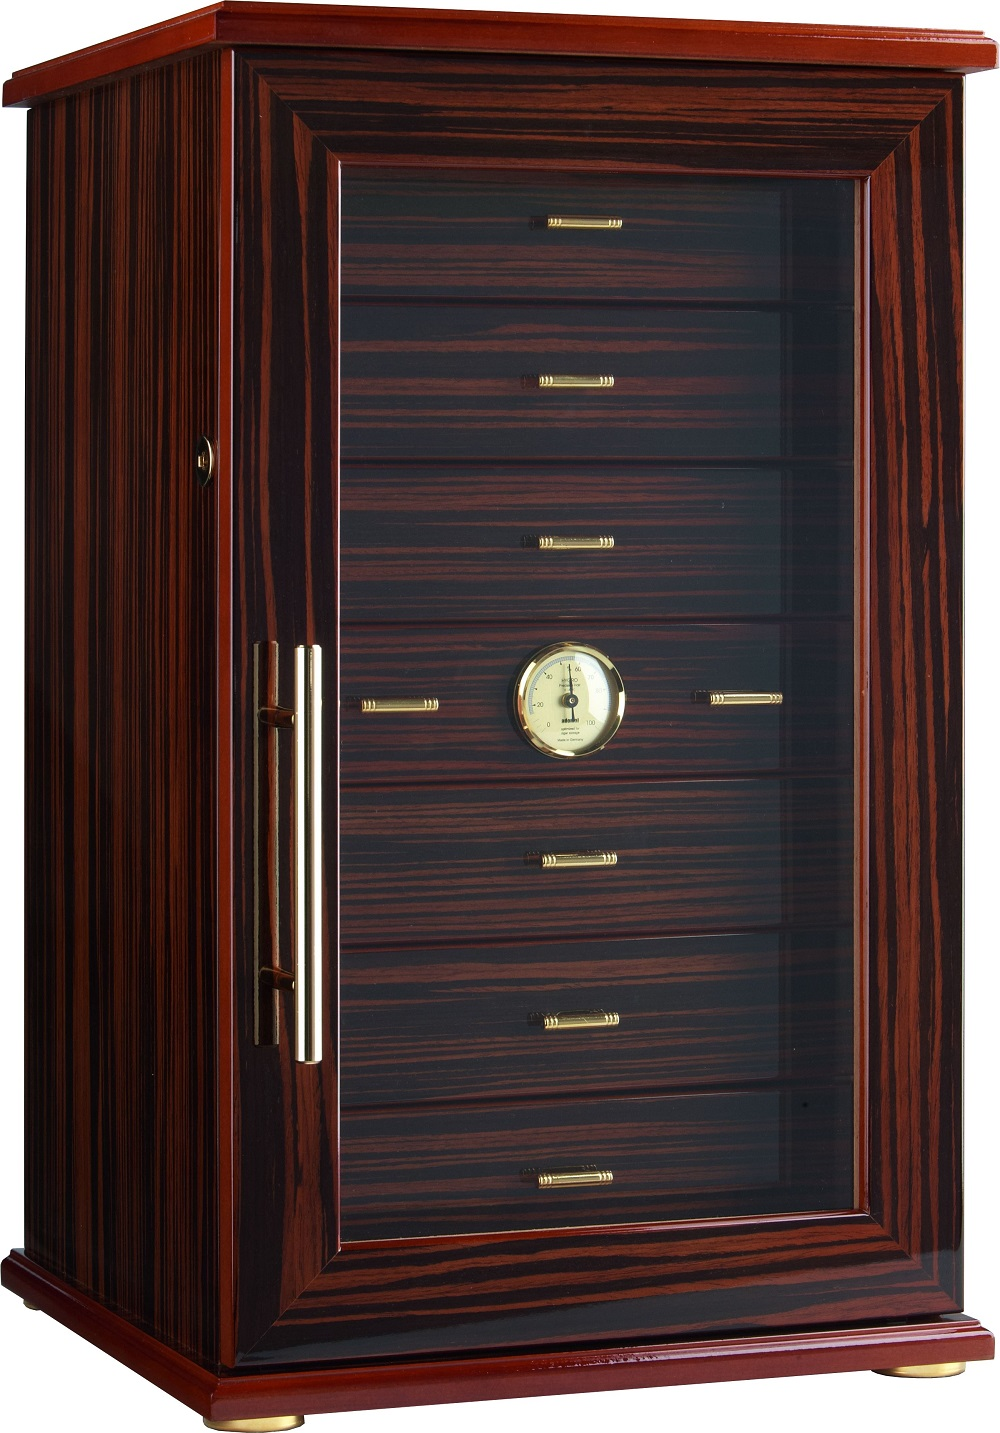 collections retail humidifier holds humidors display havana acrylic shades store cabinet cigars of humidor franklin wood count products cigar commercial hygrometer